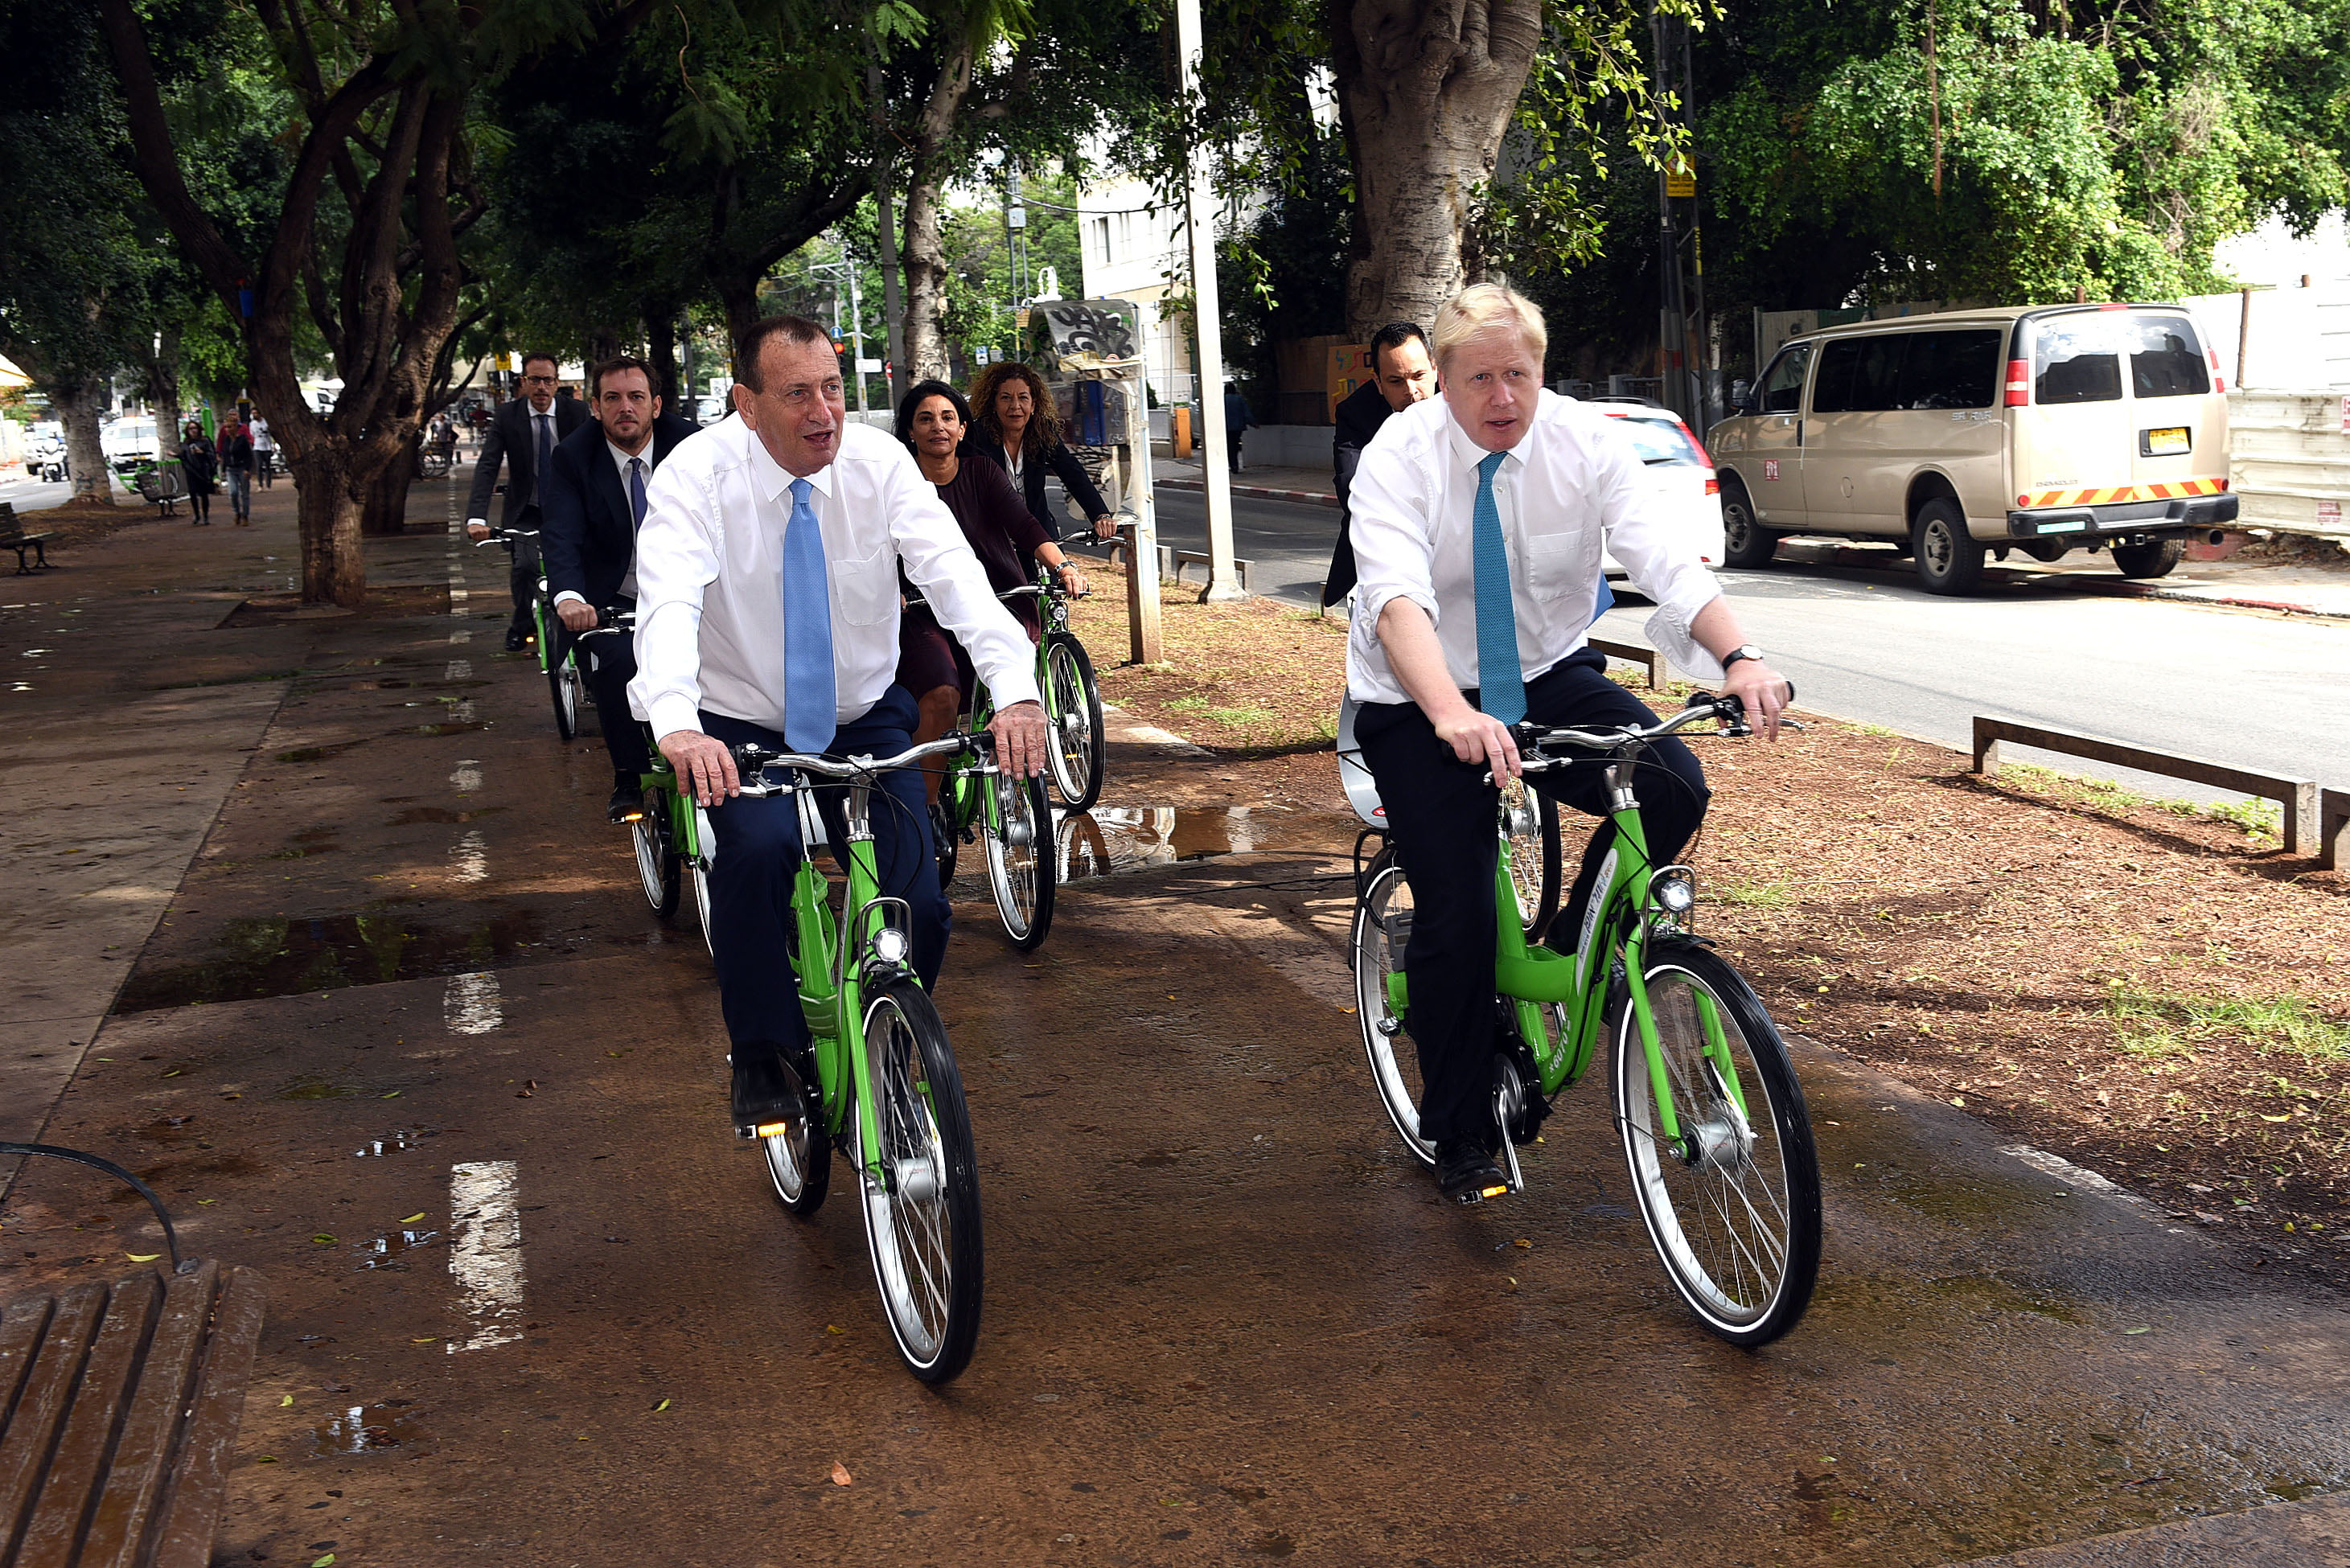 boris johnson tel aviv